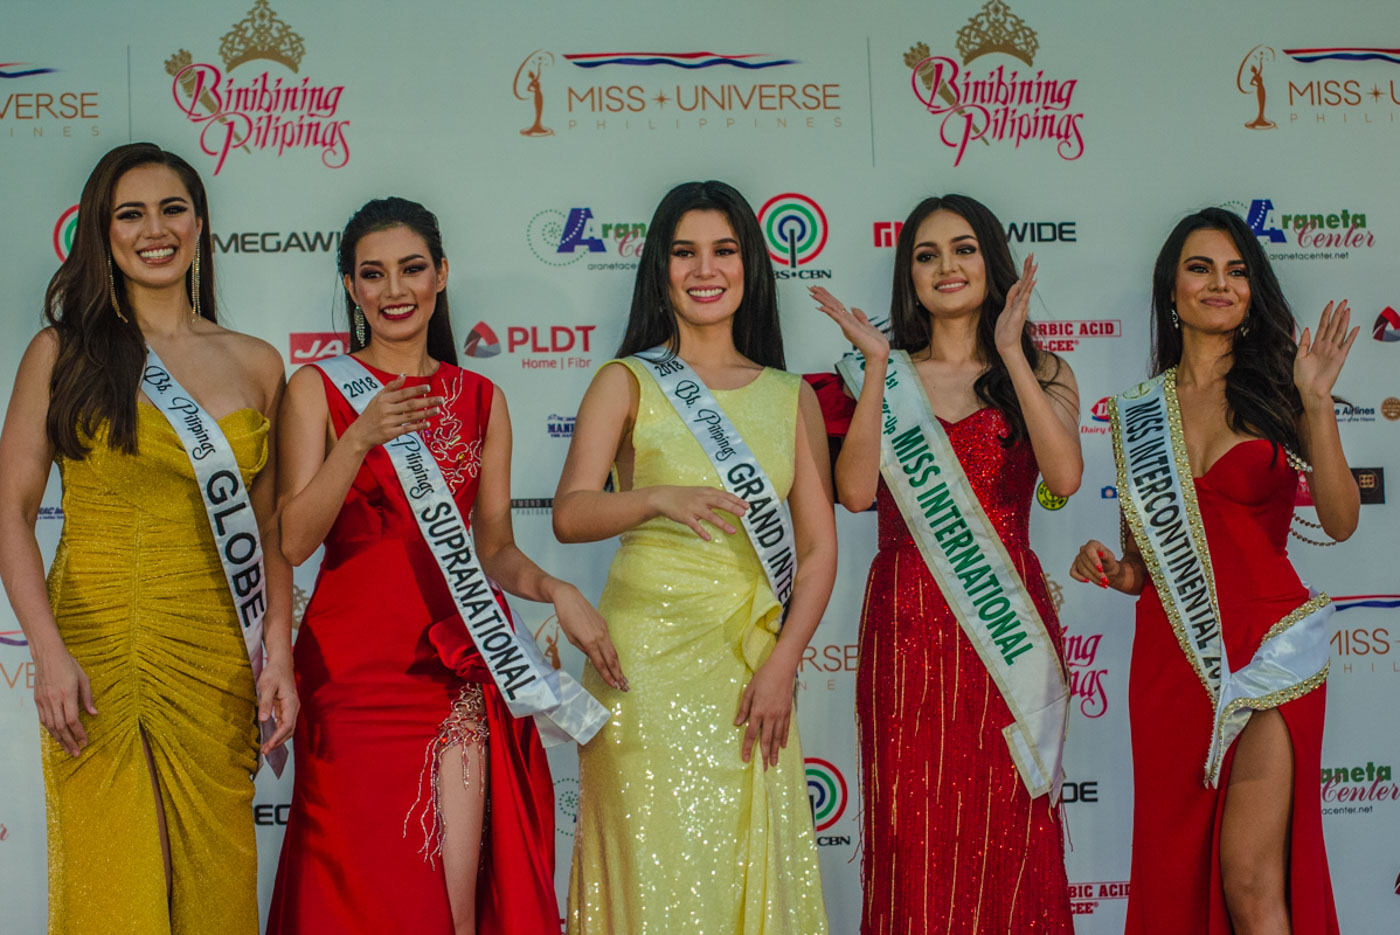 2018 QUEENS. The 5 Bb Pilipinas queens pose for a photo during the Parade of Beauties.